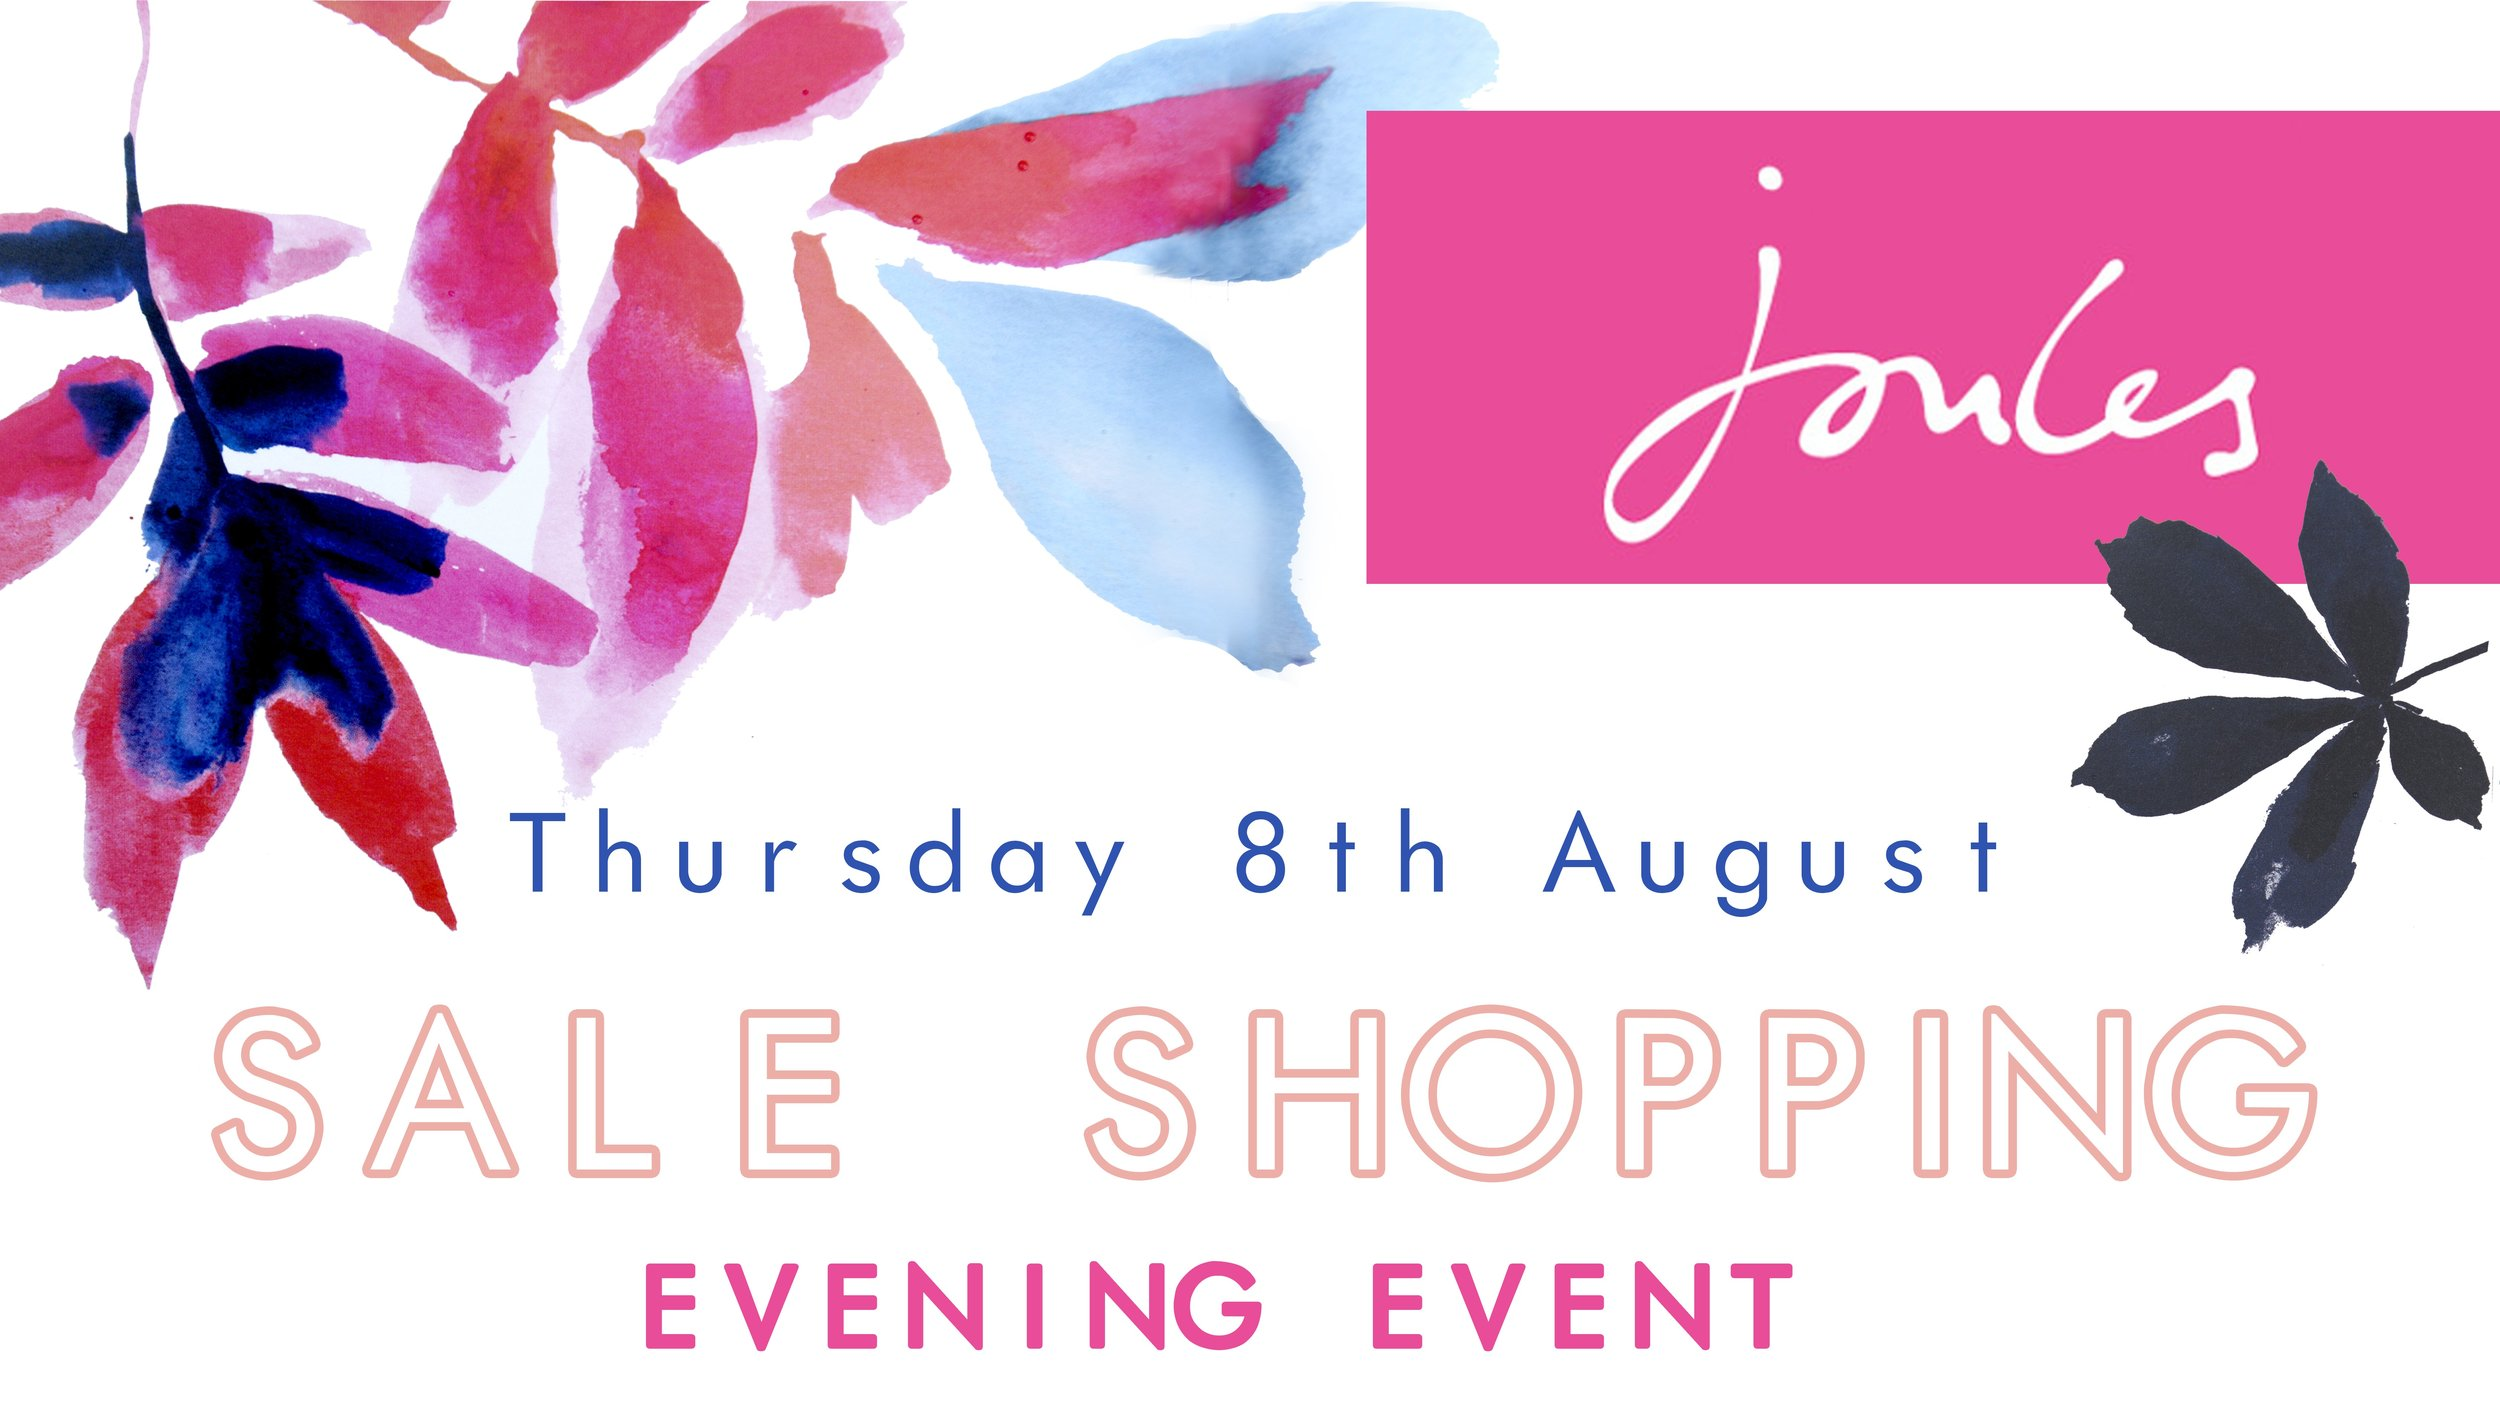 Joules_event flyer_donaghadee - Copy.jpg